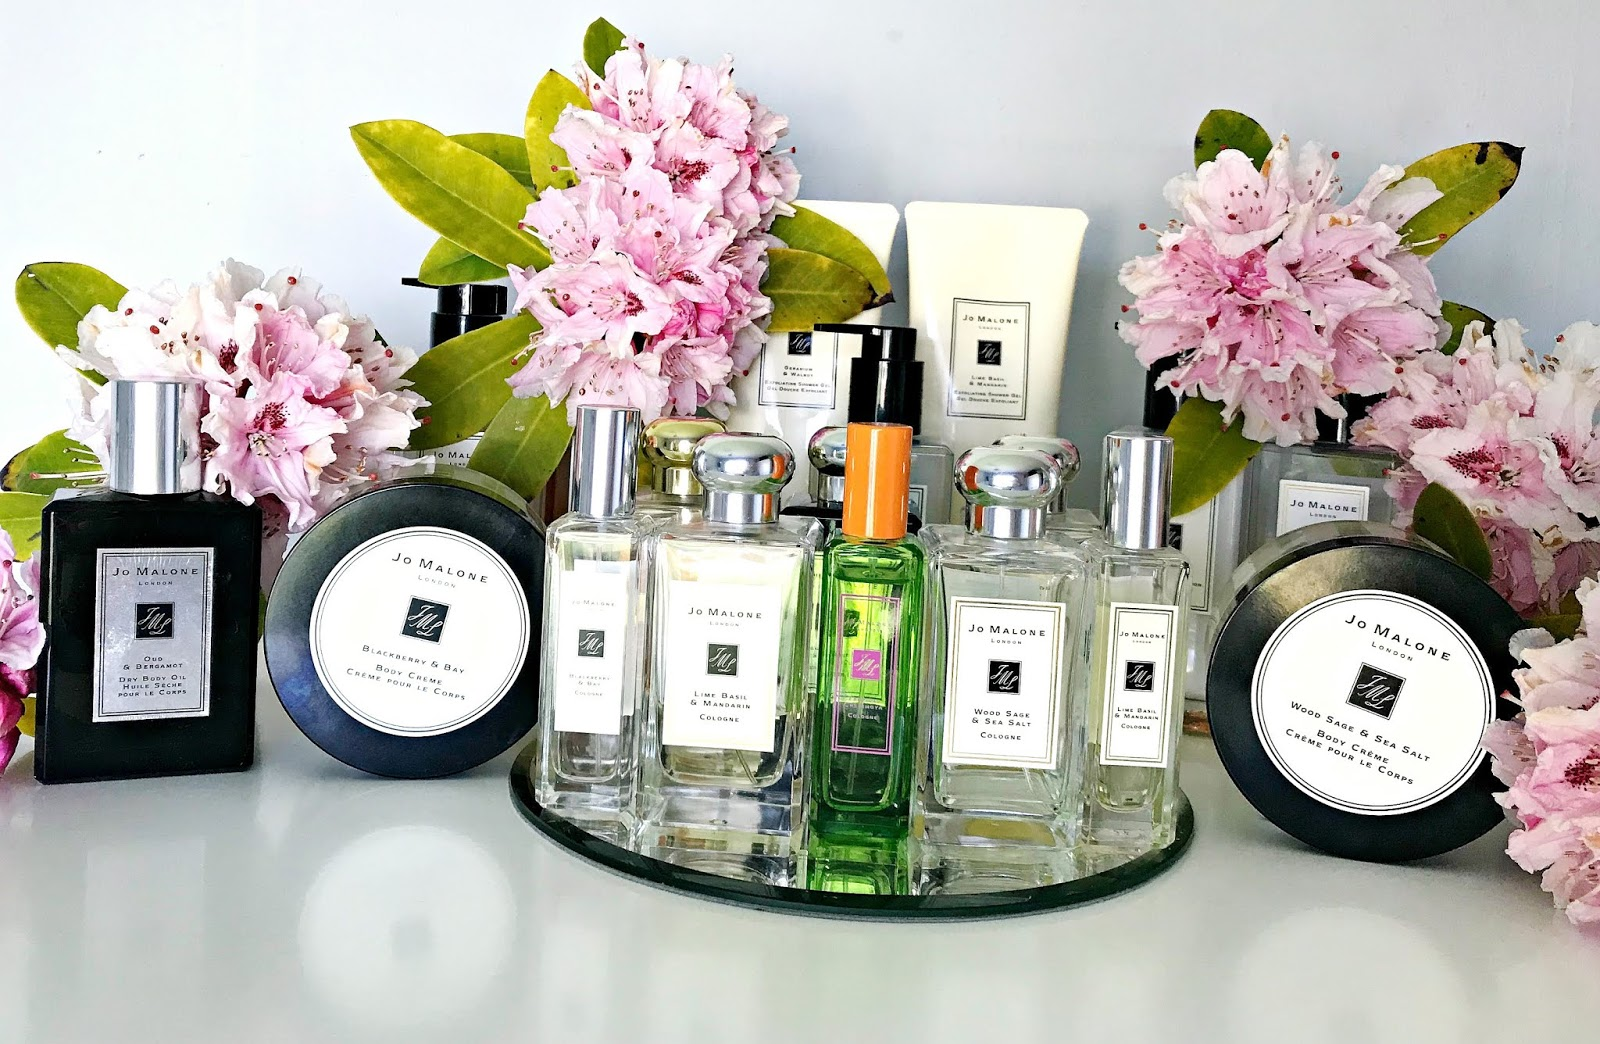 Basil & Neroli, Bath & Shower Oil, Blackberry & Bay, Body Cream, Hand & Body Lotion, Jo Malone, Lime Basil & Mandarin, Orange Bitters, Orange Blossom, Shower Gel, Tropical Cherimoya, Wood Sage & Sea Salt,  Review